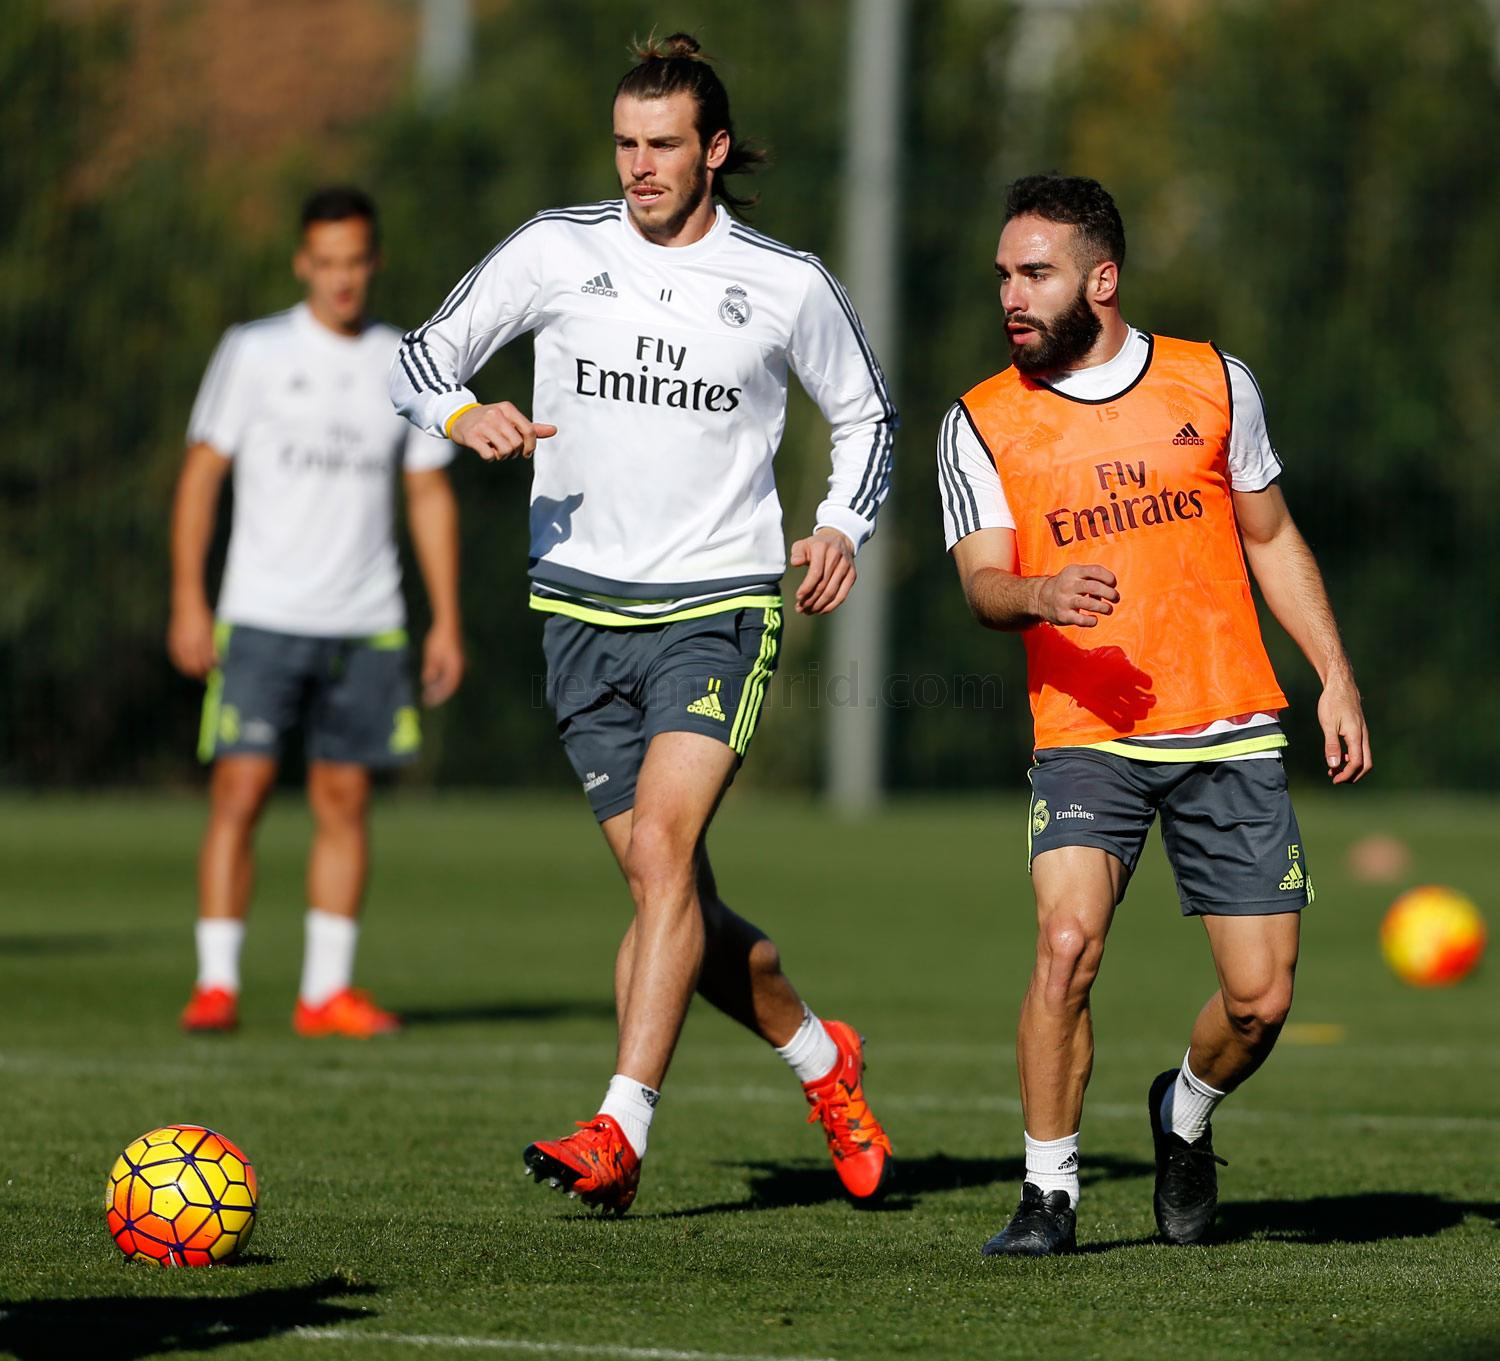 Real Madrid - Entrenamiento del Real Madrid - 12-11-2015